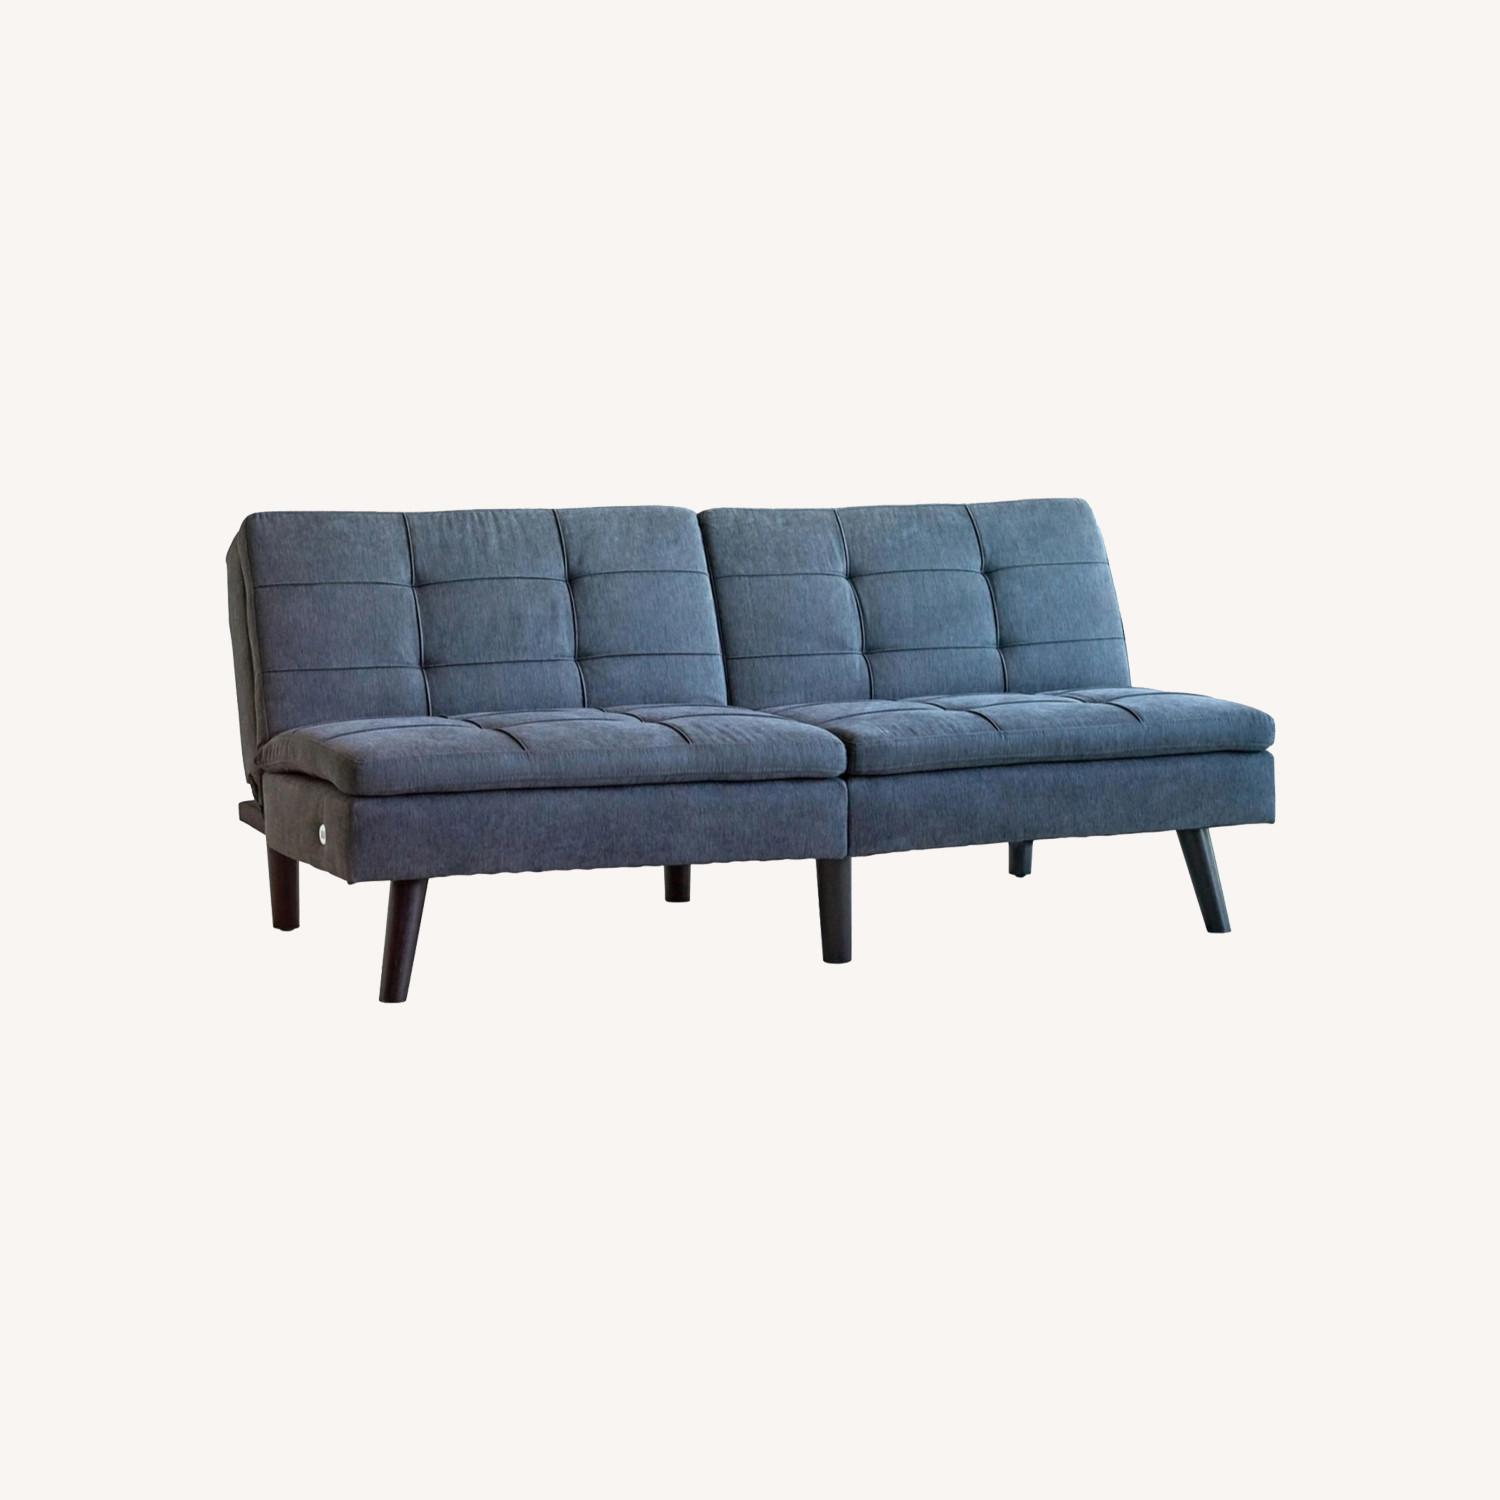 Sofa Bed In Grey Fabric W/ Dual USB Outlet - image-4